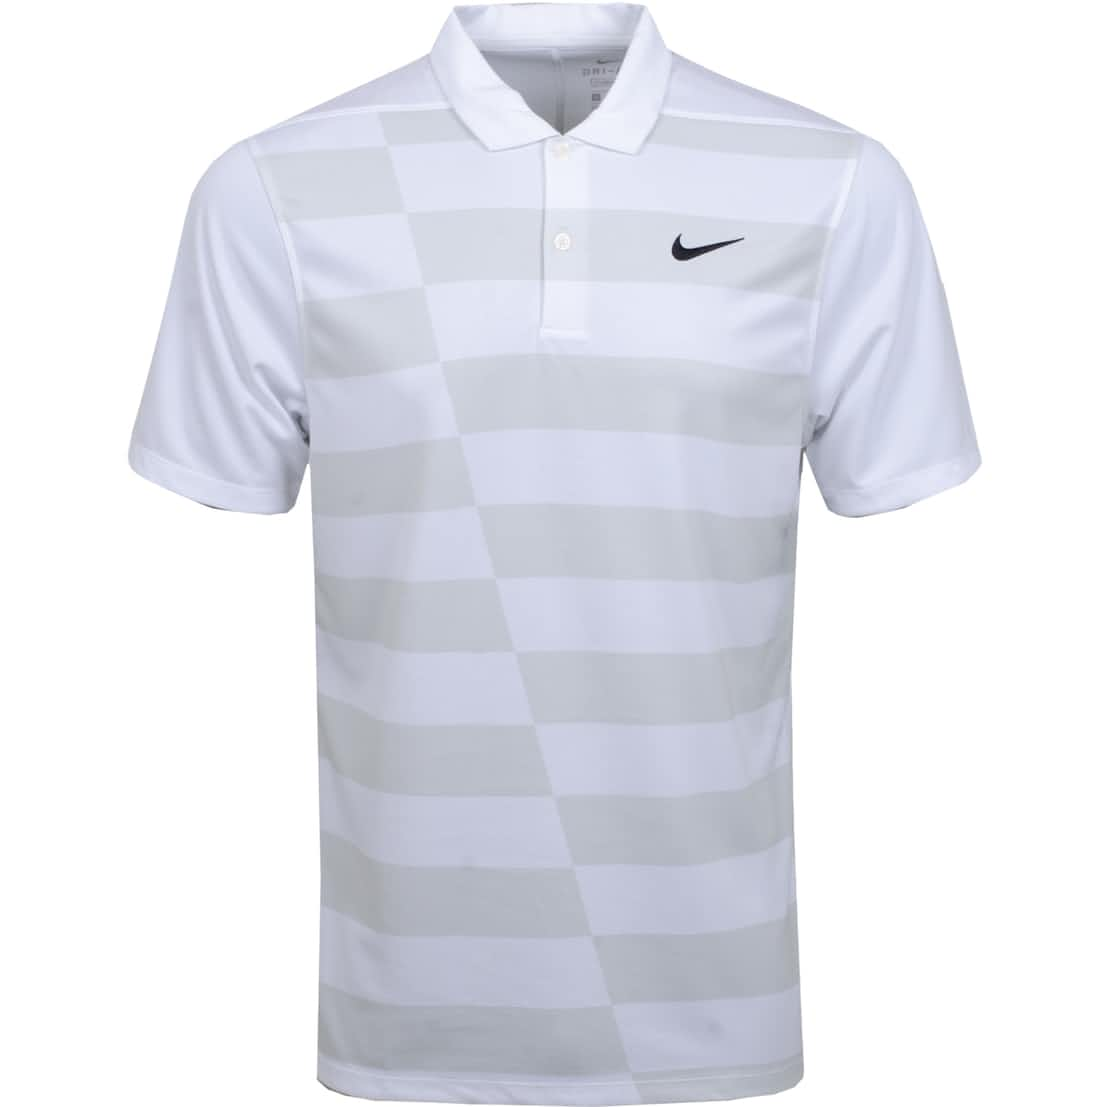 Dry Essential Graphic Hacked Polo White - AW20